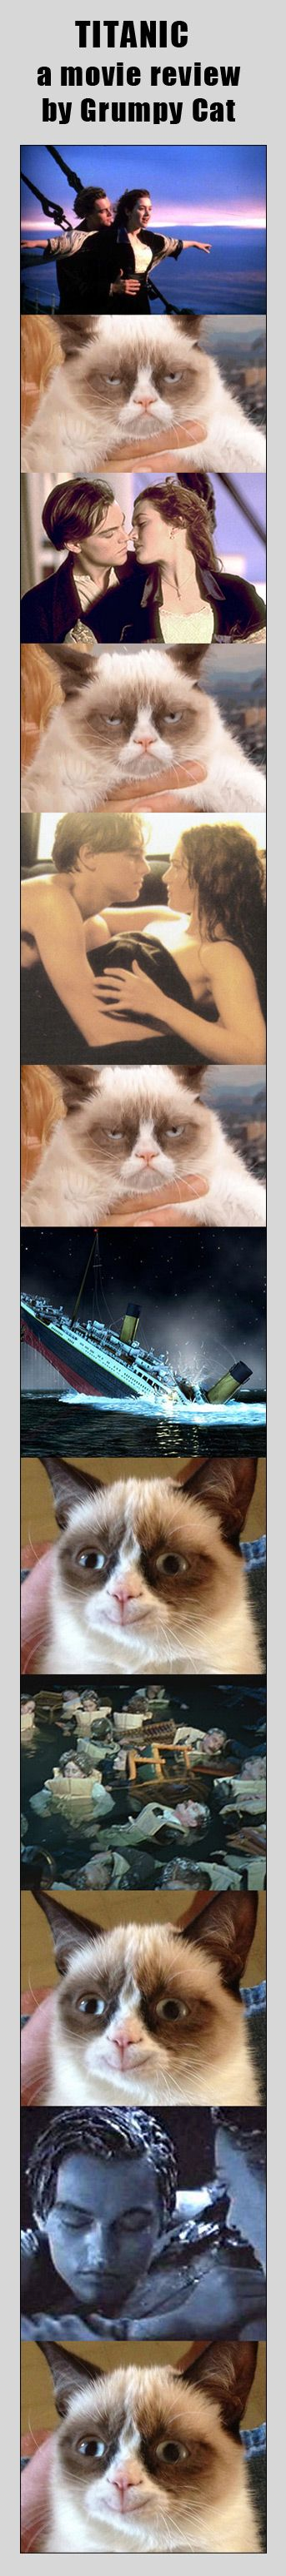 """Tard the Grumpy Cat reviews the Titanic movie (Please check out my """"Animals"""" board for more funny animal photos/ Tard the Grumpy Cat memes)"""